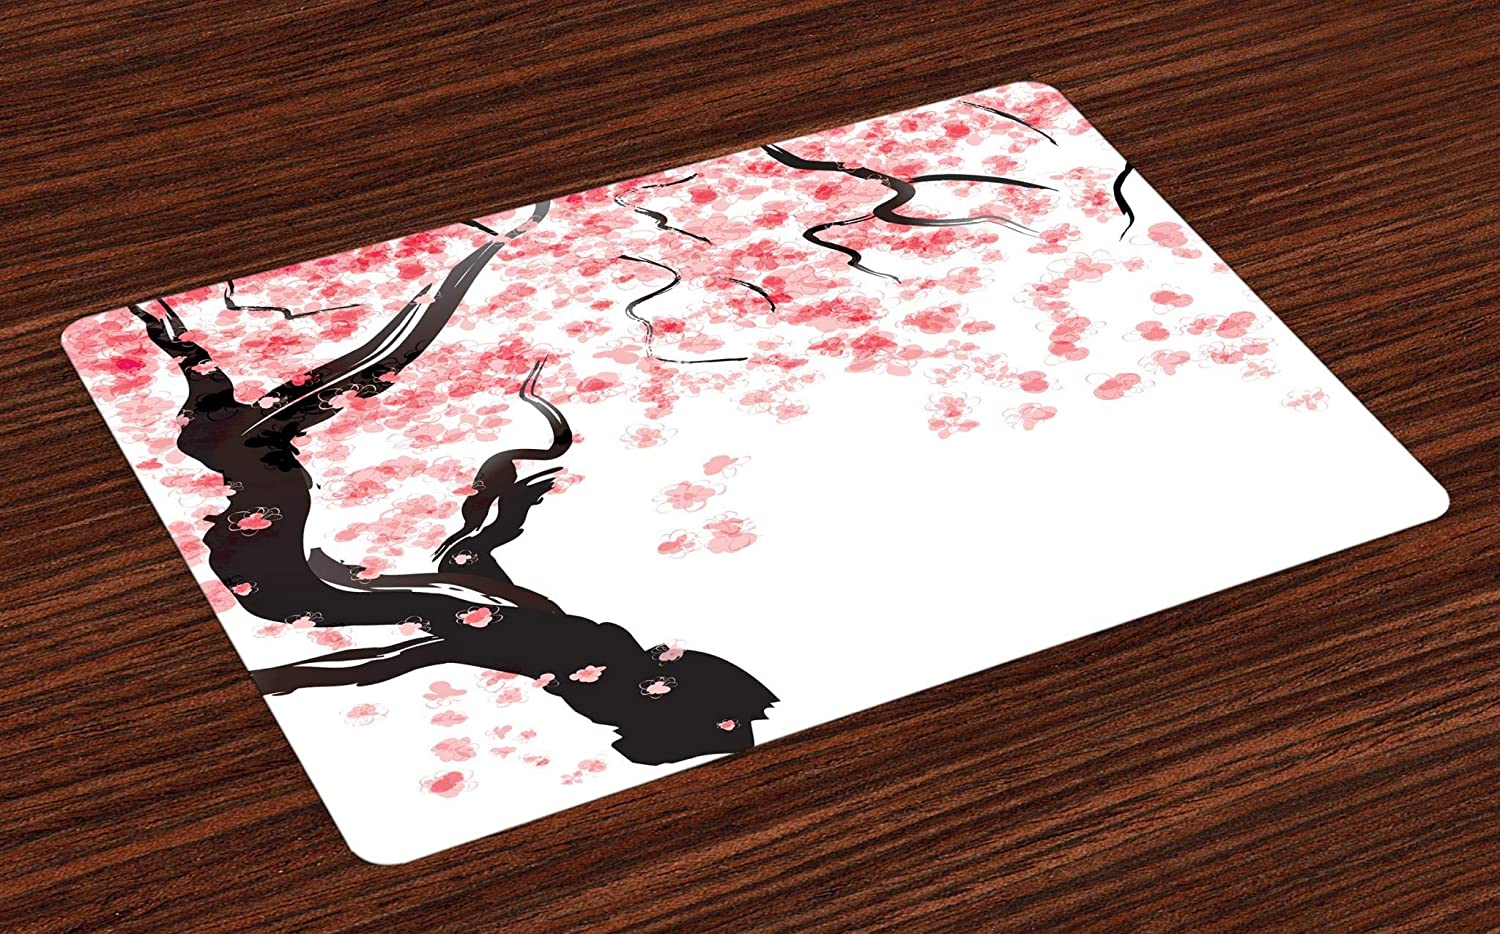 Ambesonne Floral Place Mats Set of 4, Japanese Cherry Tree Blossom in Watercolor Painting Effect, Washable Fabric Placemats for Dining Room Kitchen Table Decor, Pale Pink Seal Brown Charcoal Grey